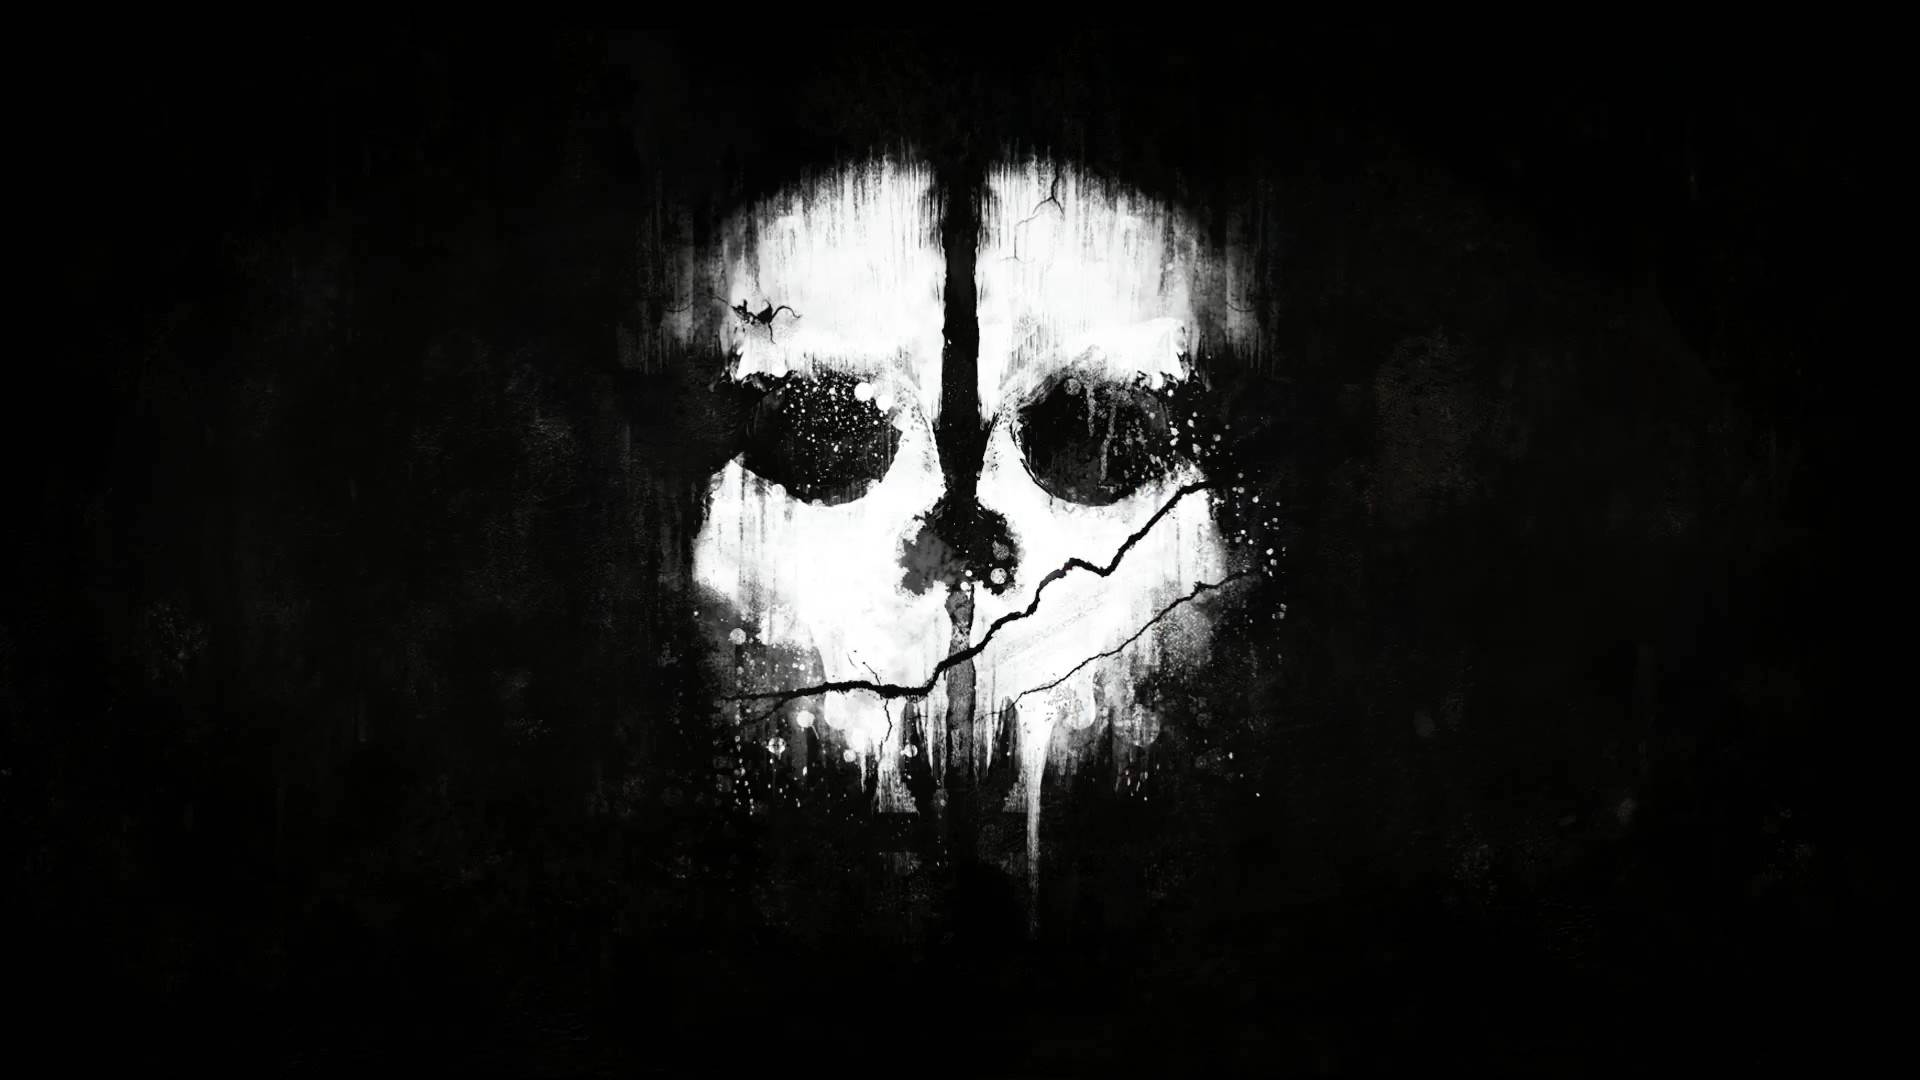 call of duty ghosts wallpaper in hd « GamingBolt.com ...